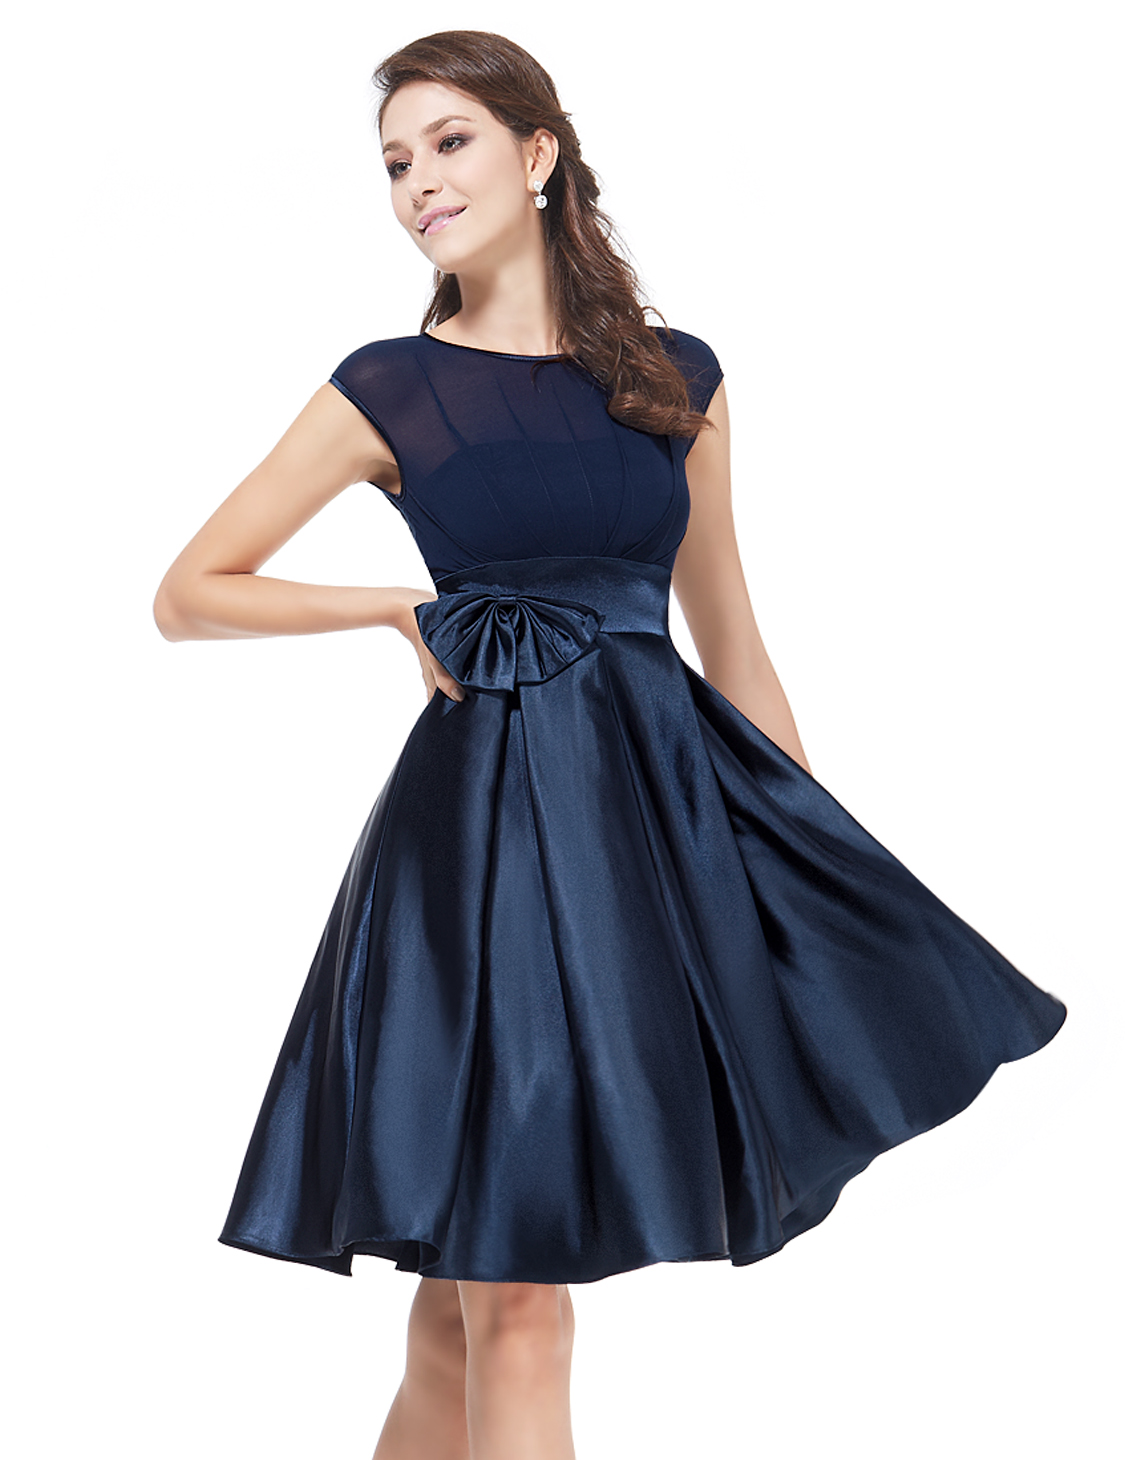 Perfect Party Dresses For Women | Women Dresses